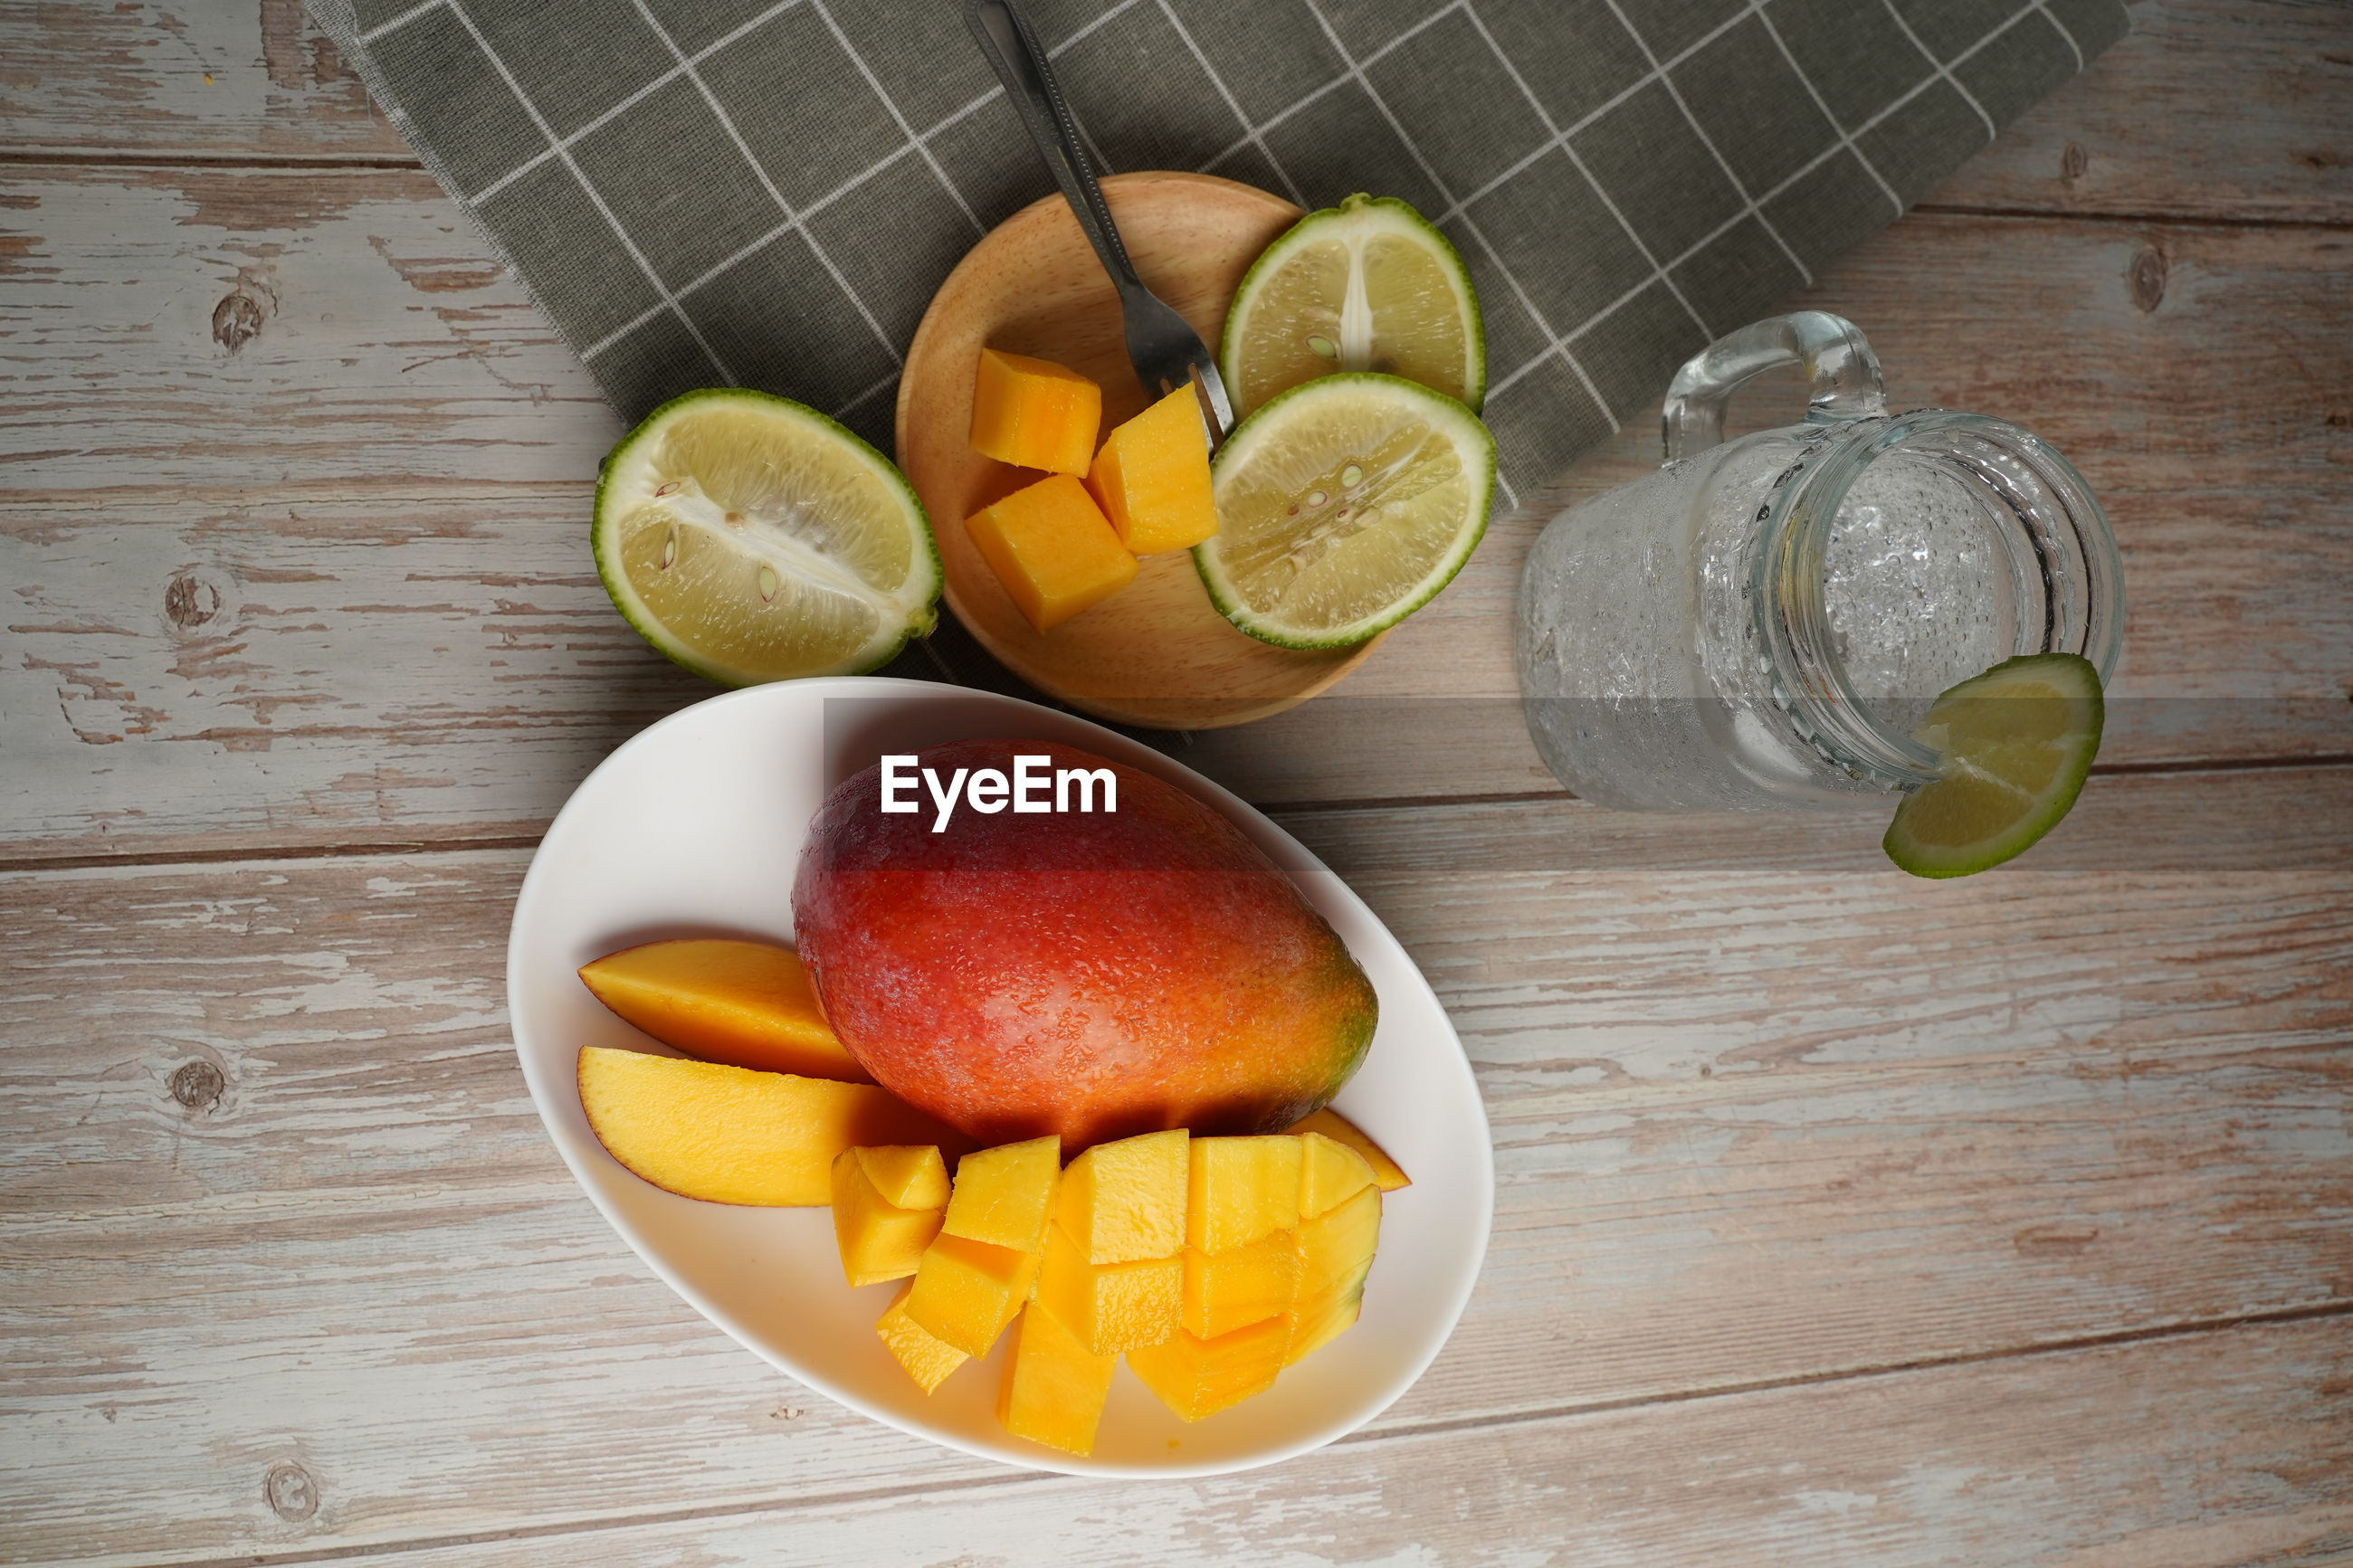 HIGH ANGLE VIEW OF FRUITS AND DRINK ON TABLE